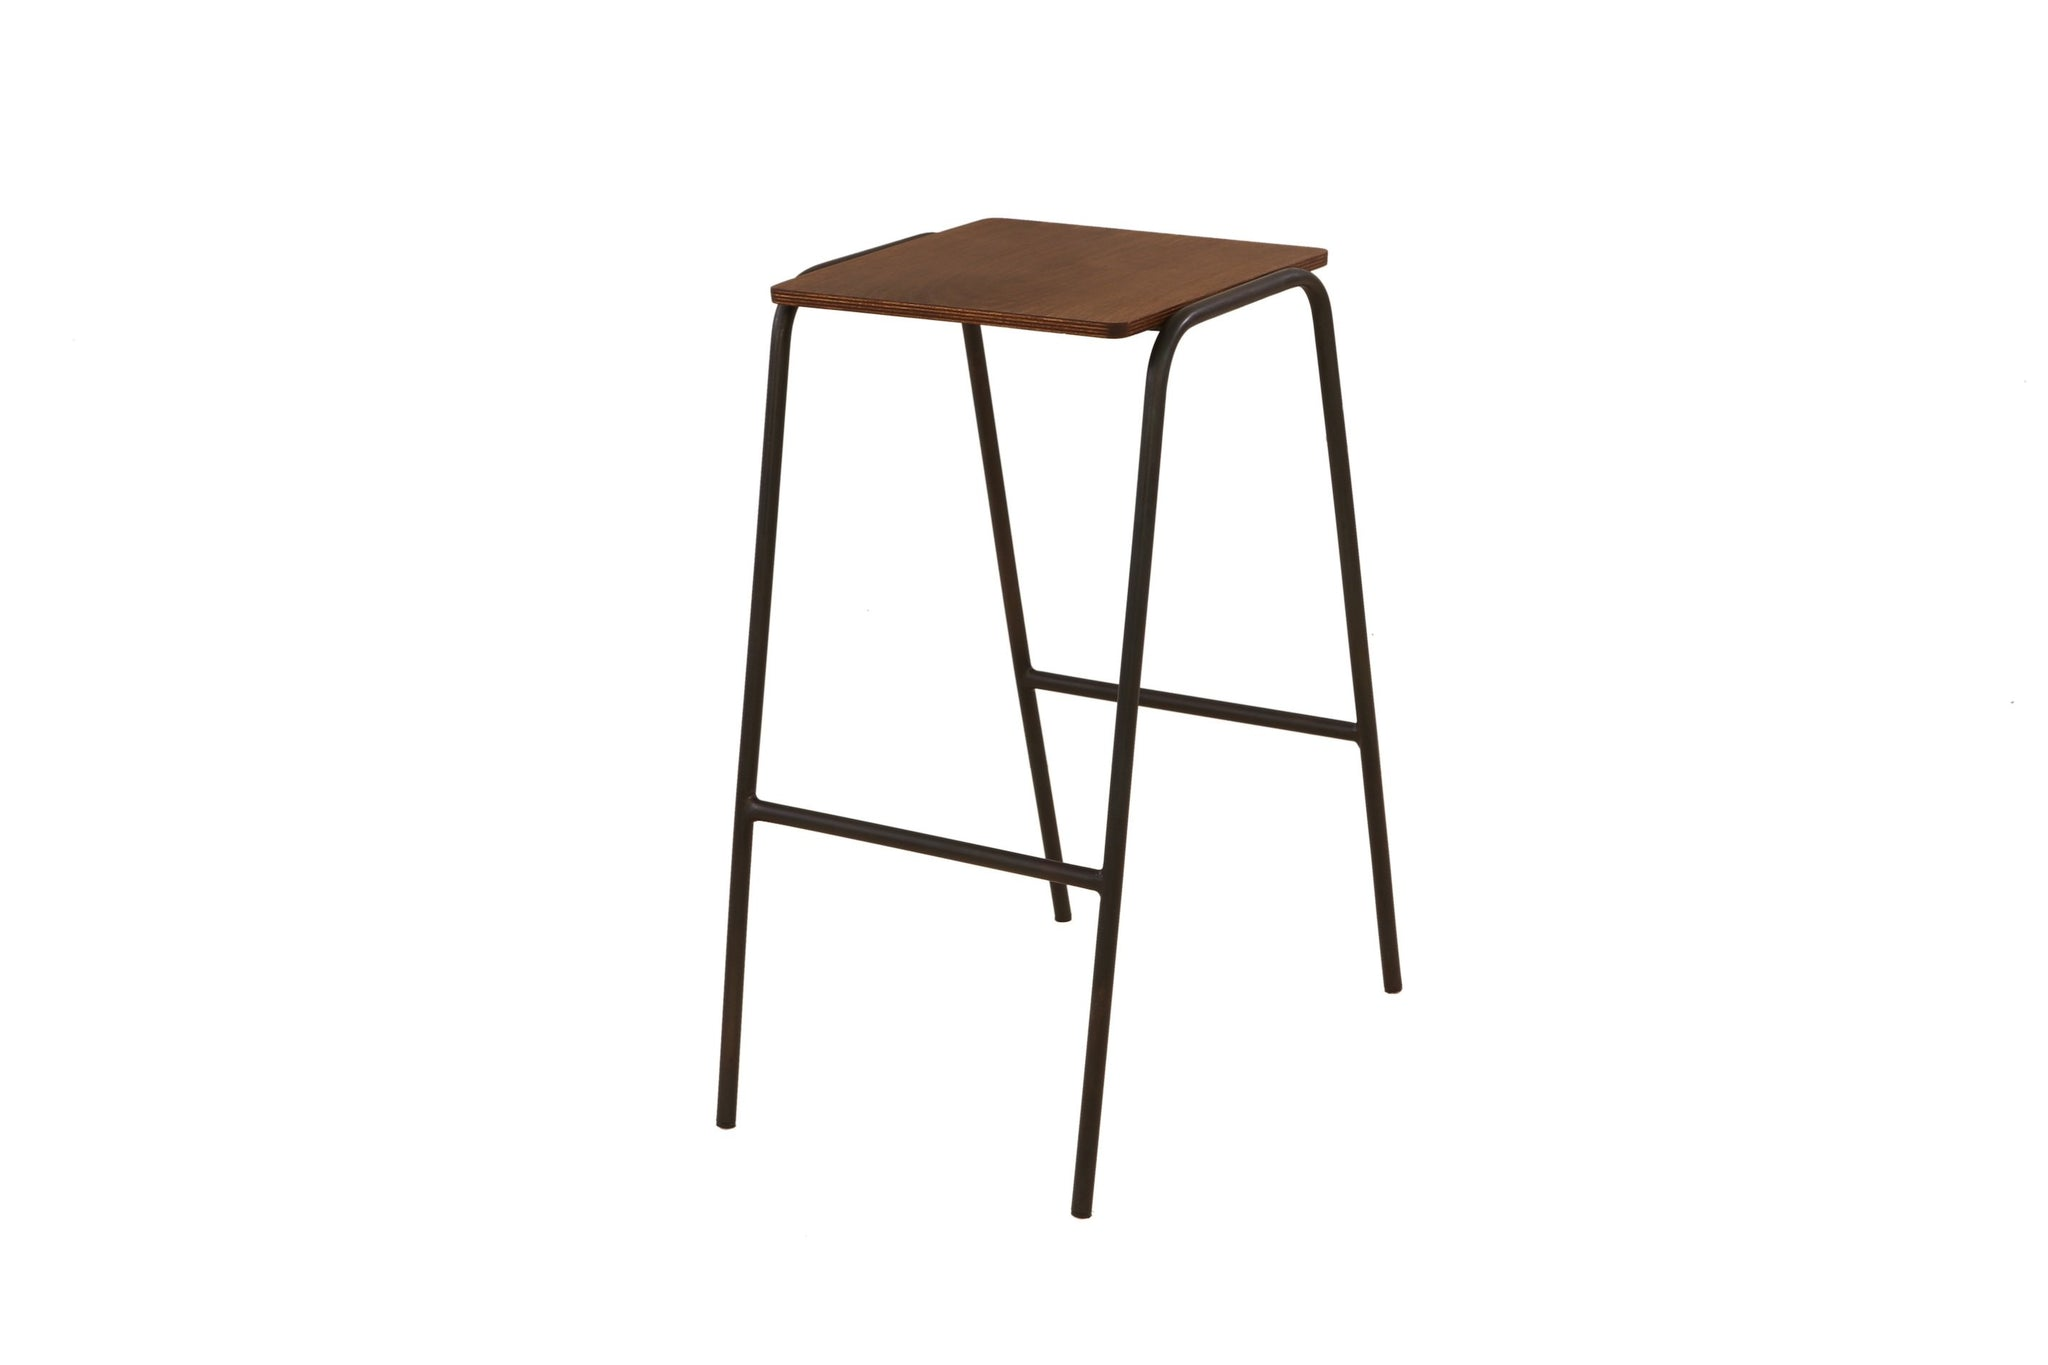 Ladder Kitchen Counter Height Stool x 2